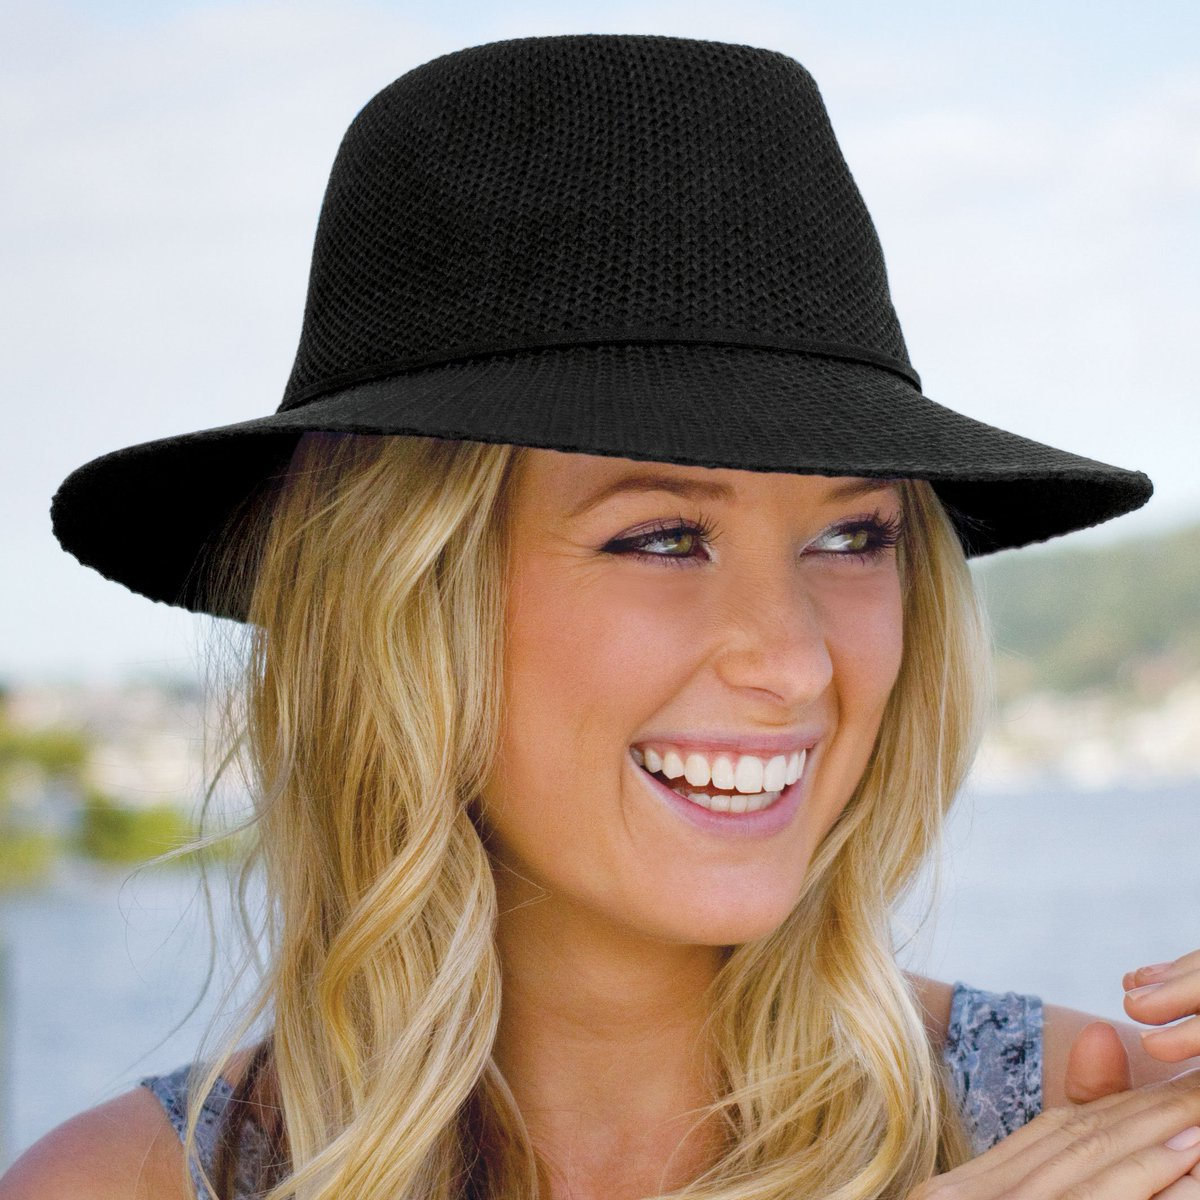 http   www.sun-togs.co.uk womens uv-leisurewear uv-sun-hats.html limit all  … All our popular Wallaroo Hats are now back in stock. d5a8d59afa6